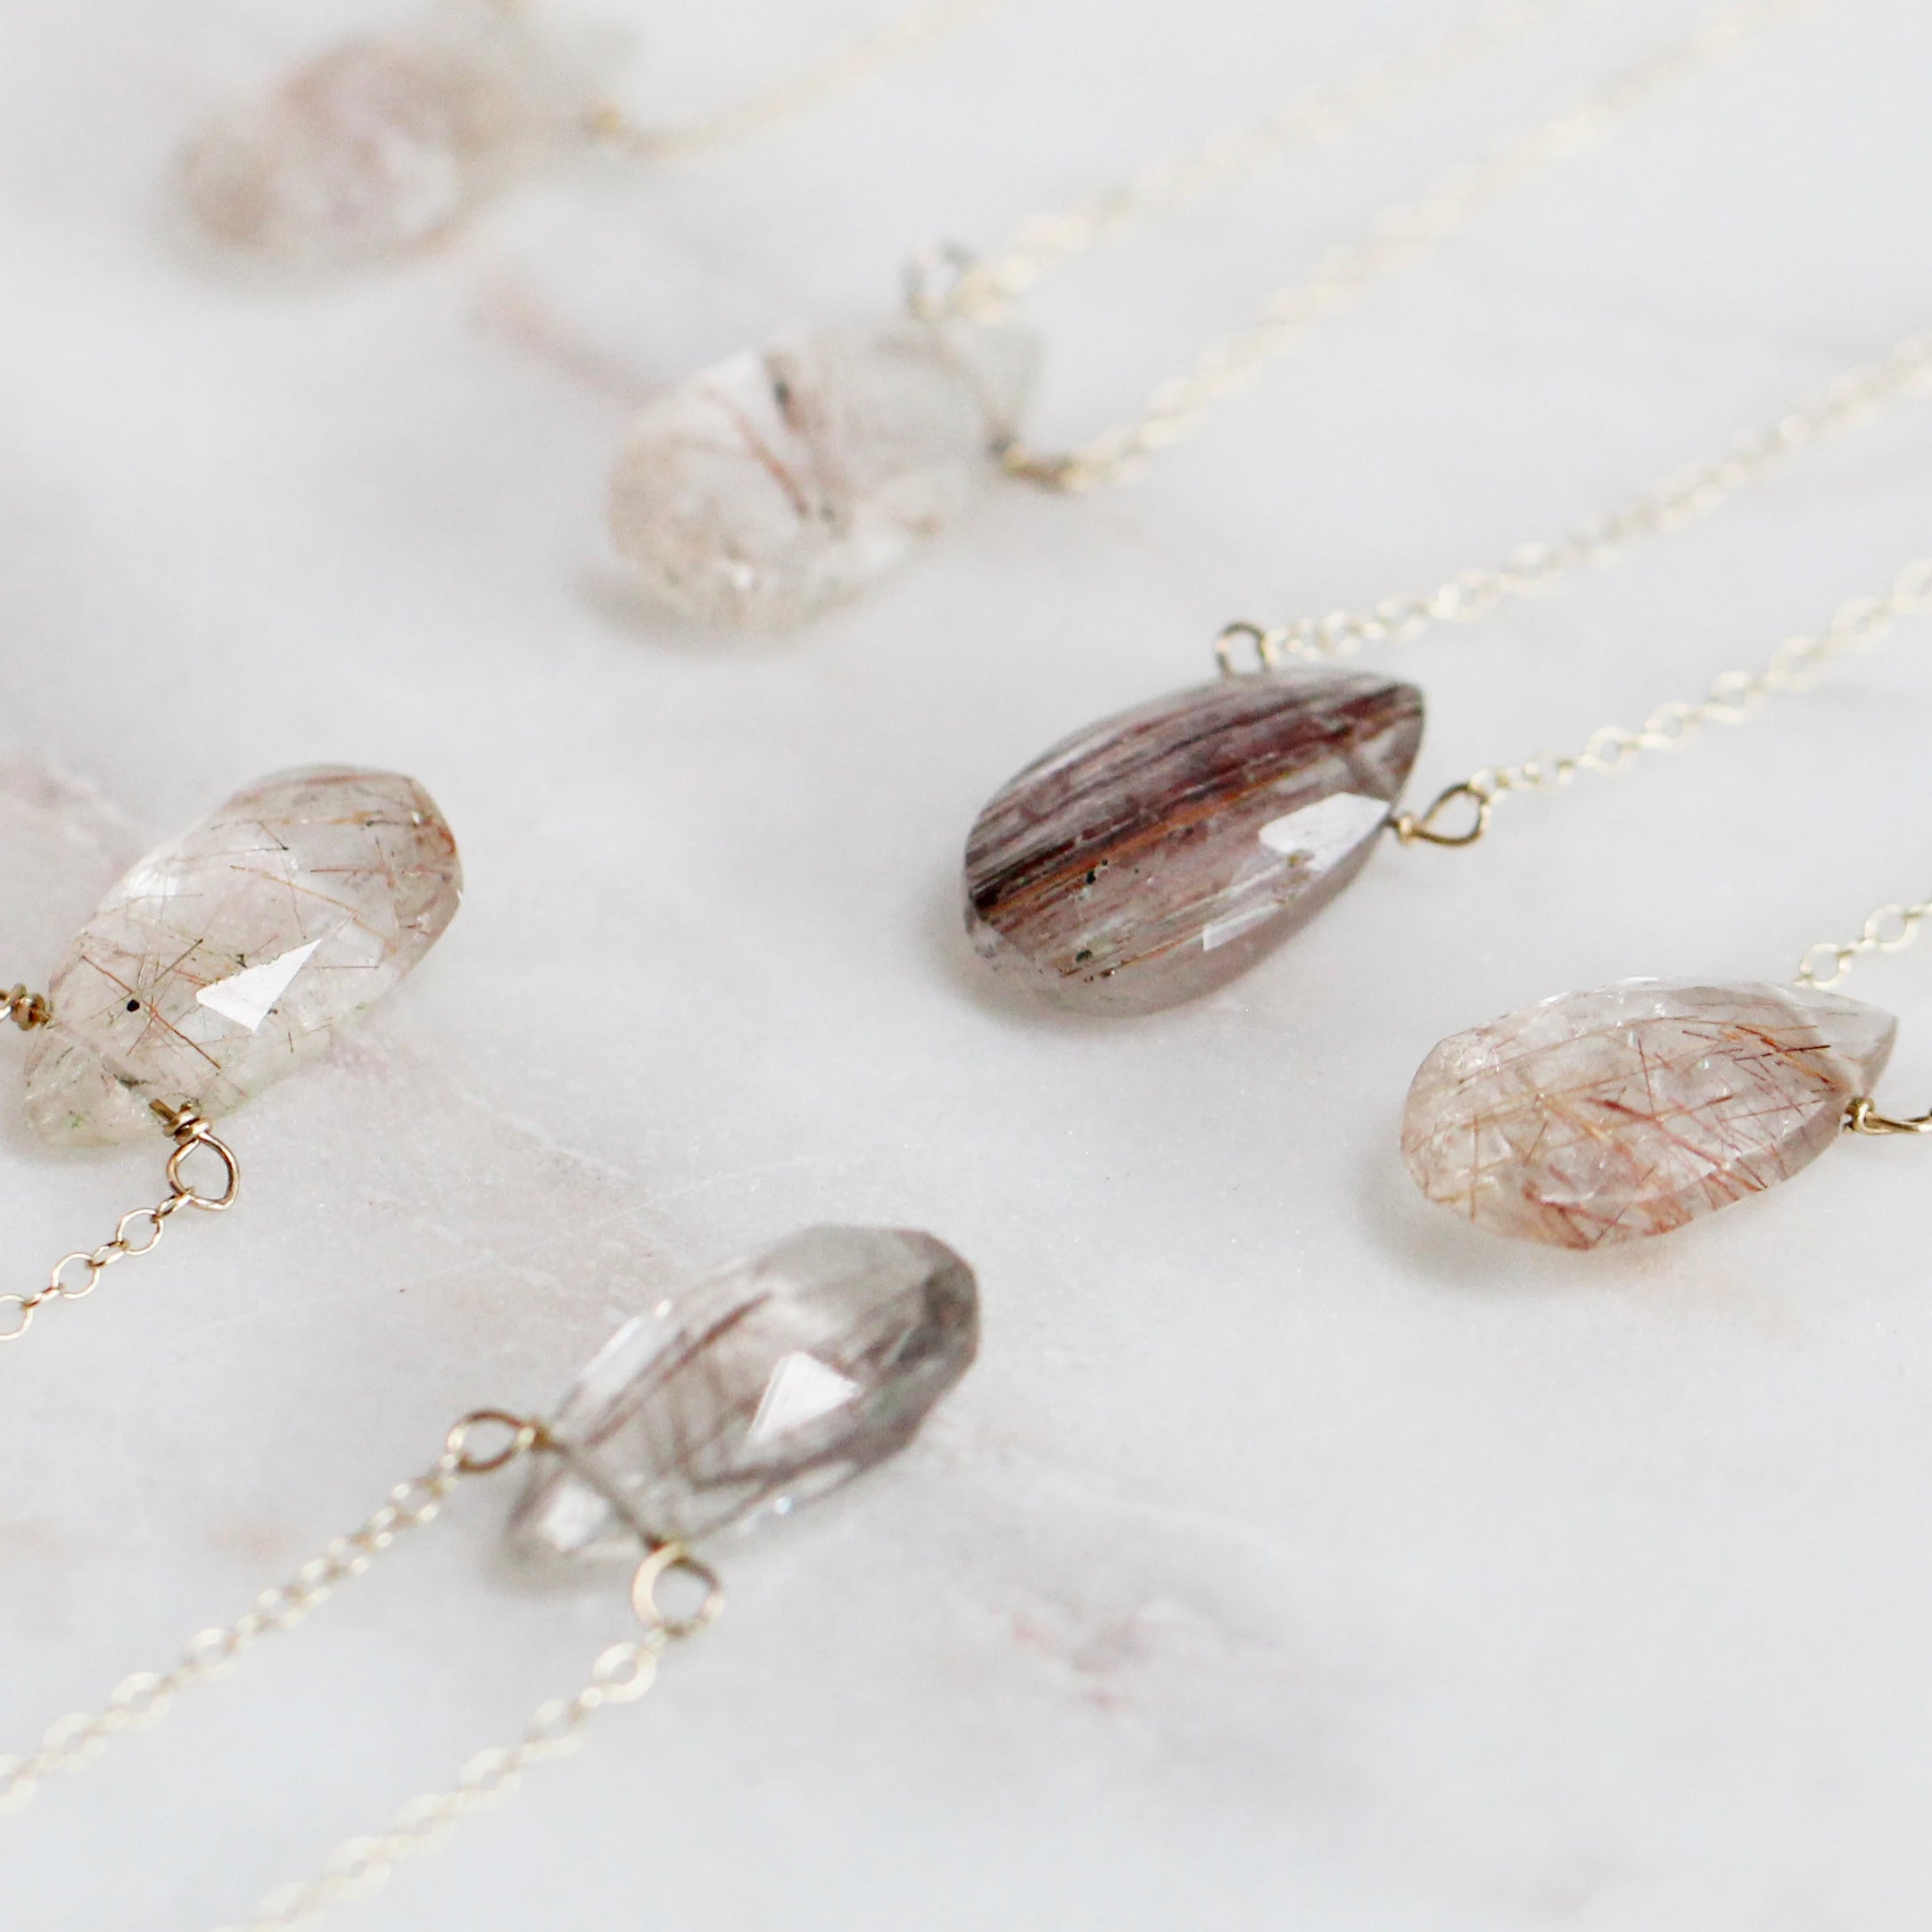 PICK a Copper Rutilated Quartz Pear Pendant Necklace - yellow gold fill chain - Salt & Pepper Celestial Diamond Engagement Rings and Wedding Bands  by Midwinter Co.